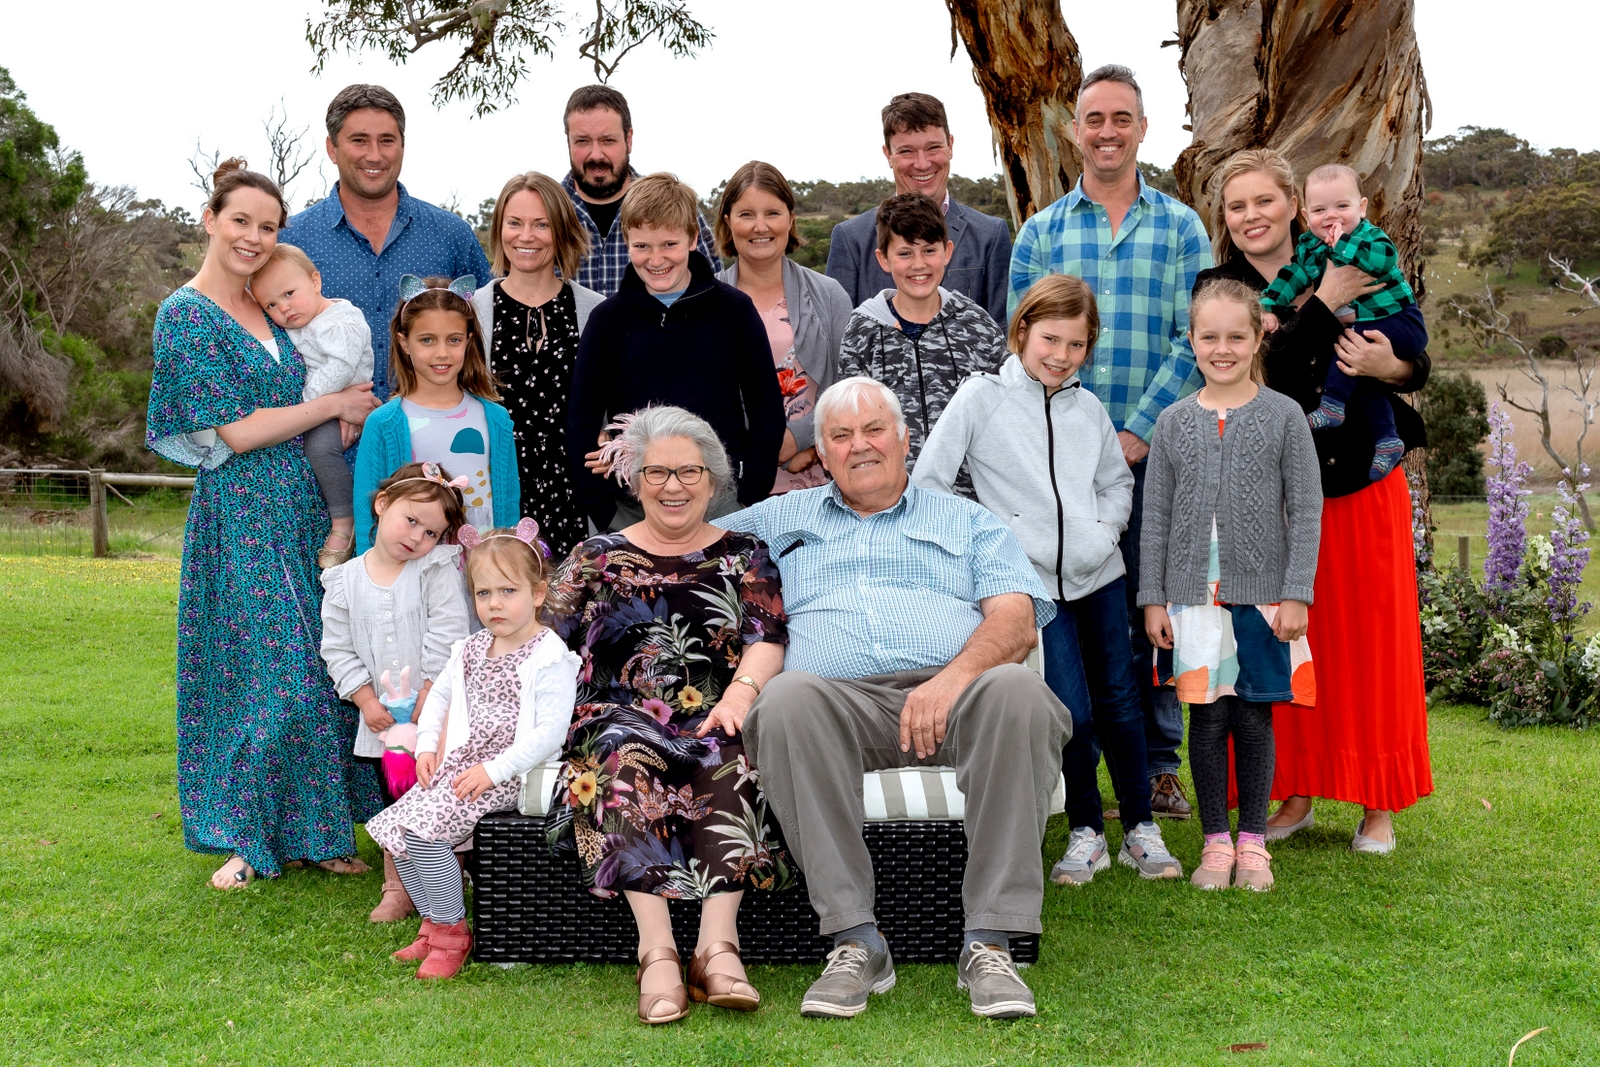 Evermore Photographics | Family Portrait Photos | South Australia